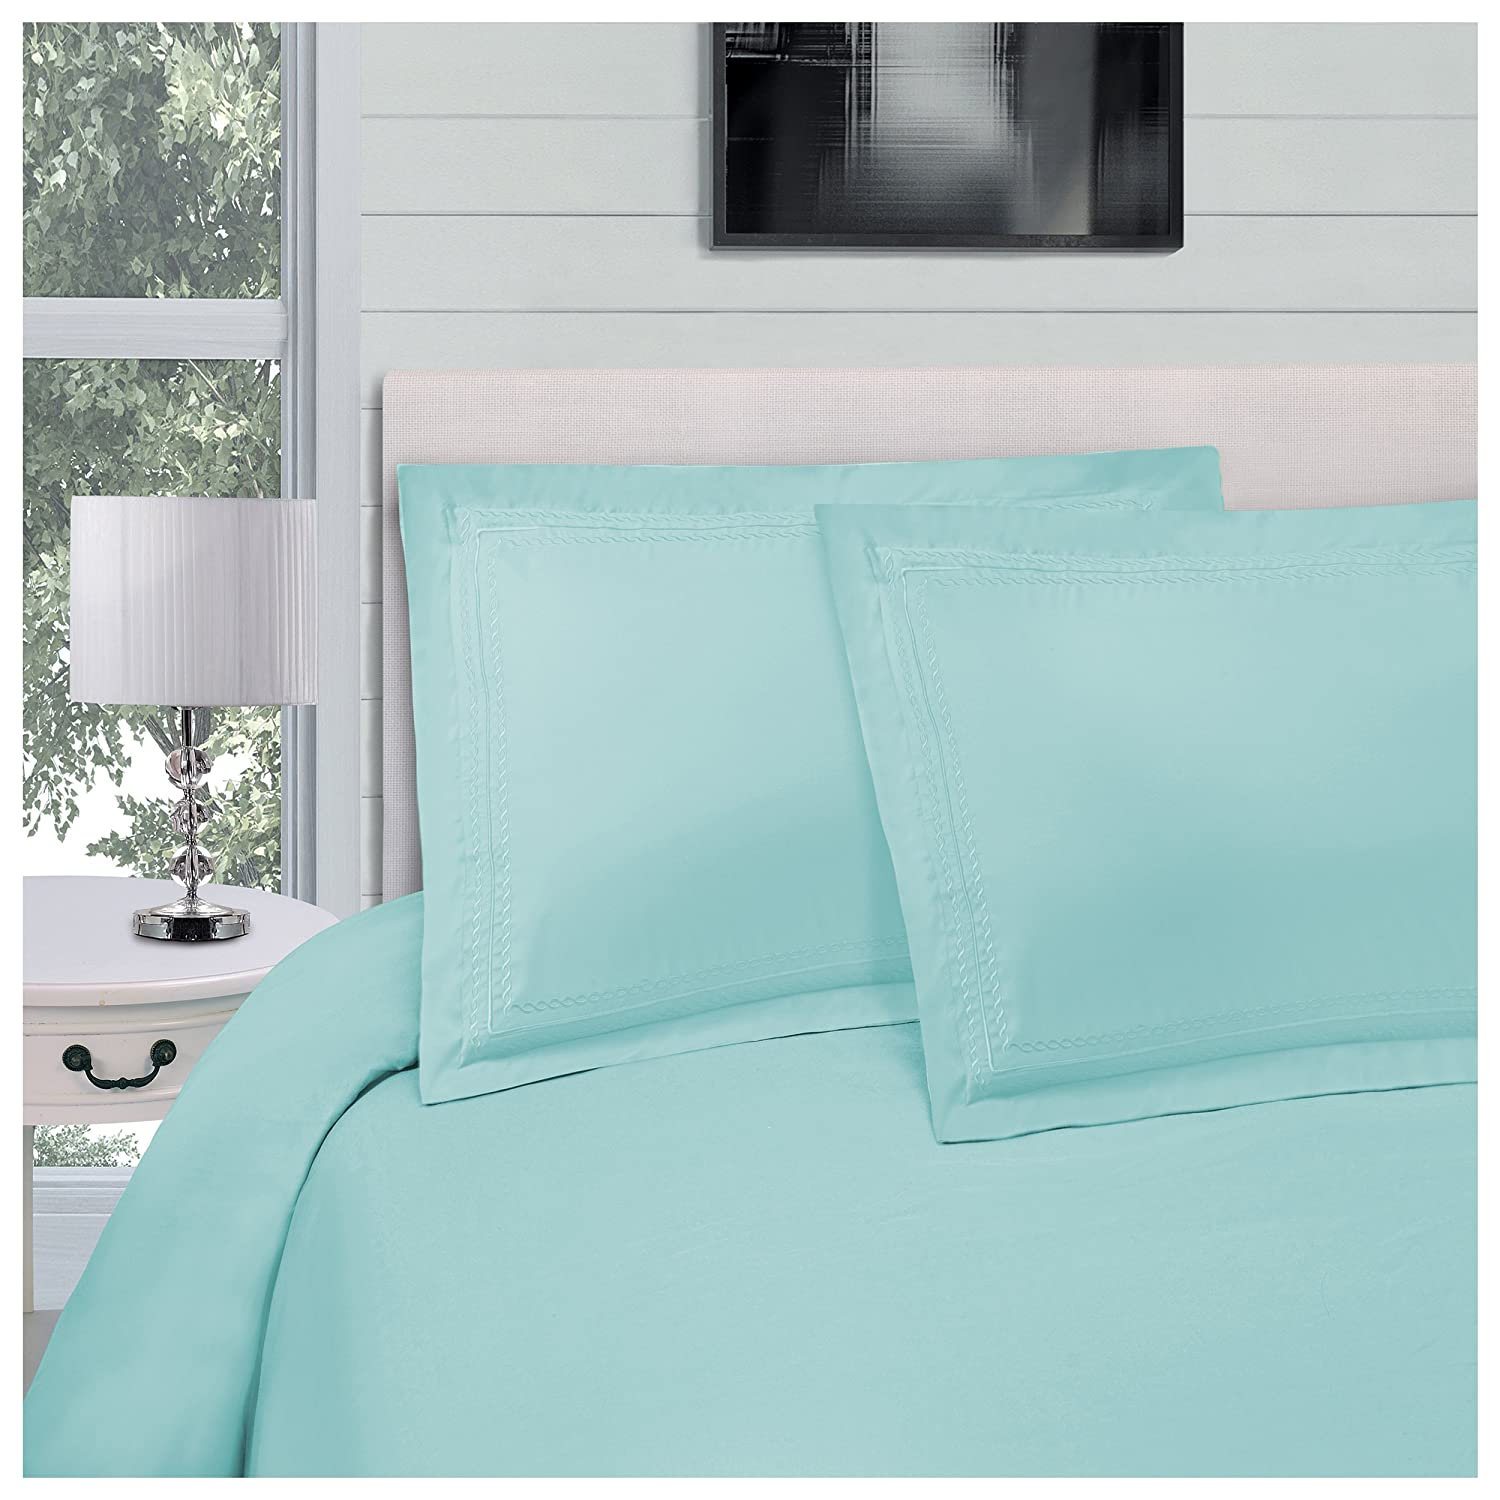 (King/California King, Aqua Marine) Superior Infinity Embroidered Luxury Soft, Cooling 100% Brushed Microfiber Duvet Cover Set with 2 Pillow Shams, Light Weight and Wrinkle Resistant King/California King Duvet Cover, Aqua Marine B071L84HMH King/California King アクアマリン アクアマリン King/California King